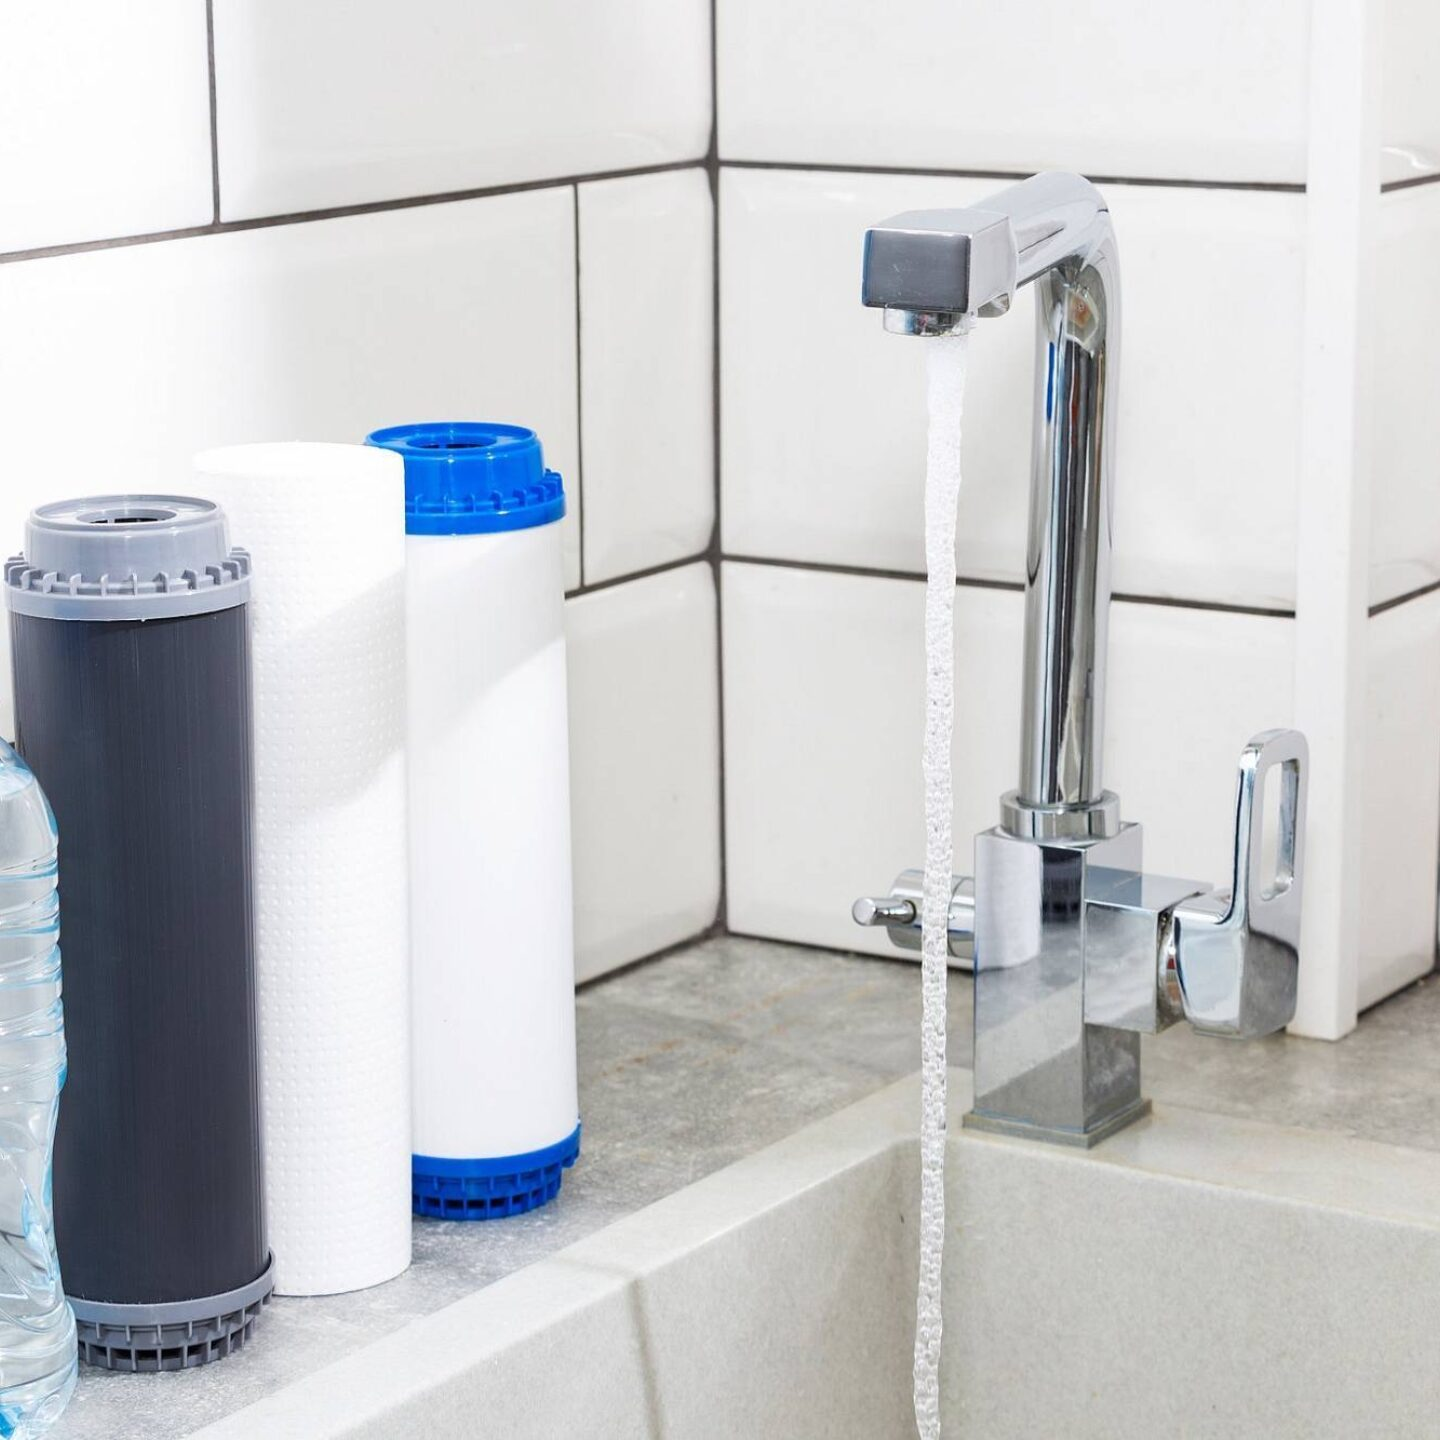 Running tap water - Tips to Treat PFAS Chemicals in Your Drinking Water | NSF International